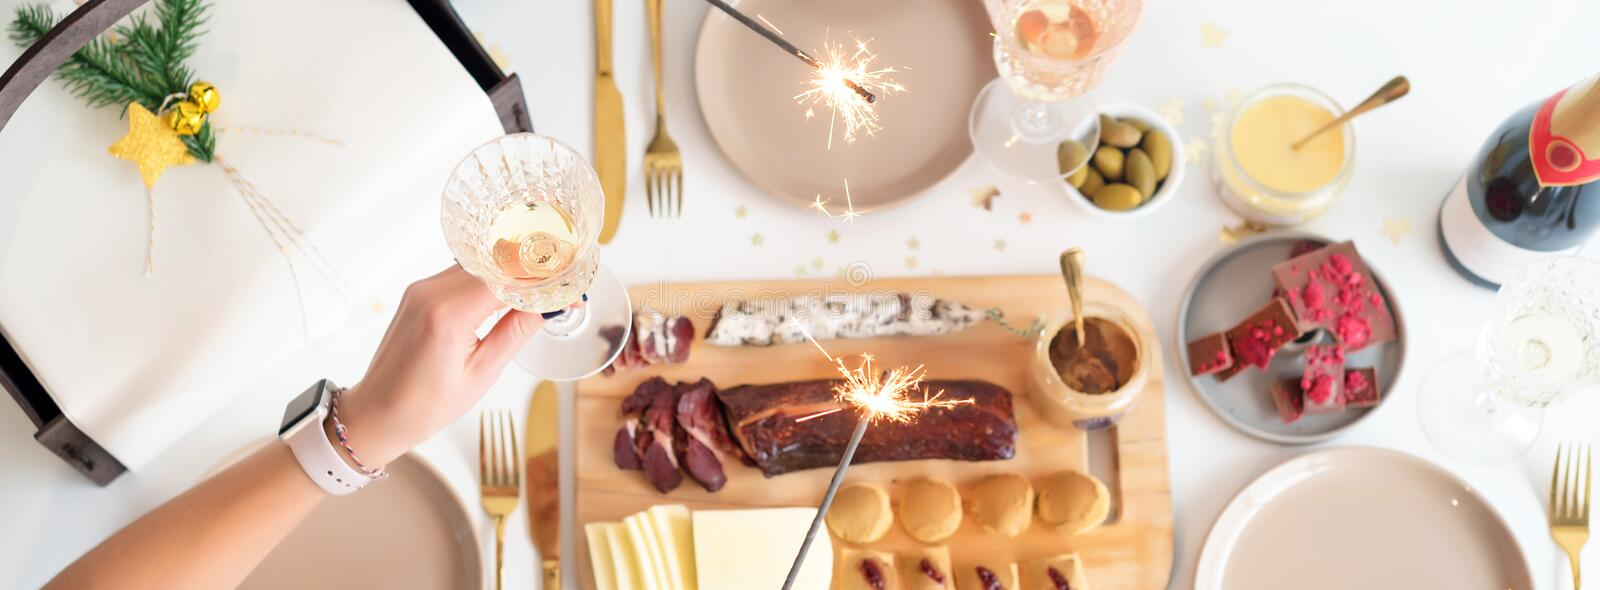 Christmas Family Dinner Table Concept. Christmas feast. Holiday Gold place setting, overhead shoot. Christmas Family Dinner Table Concept. Christmas feast stock photo